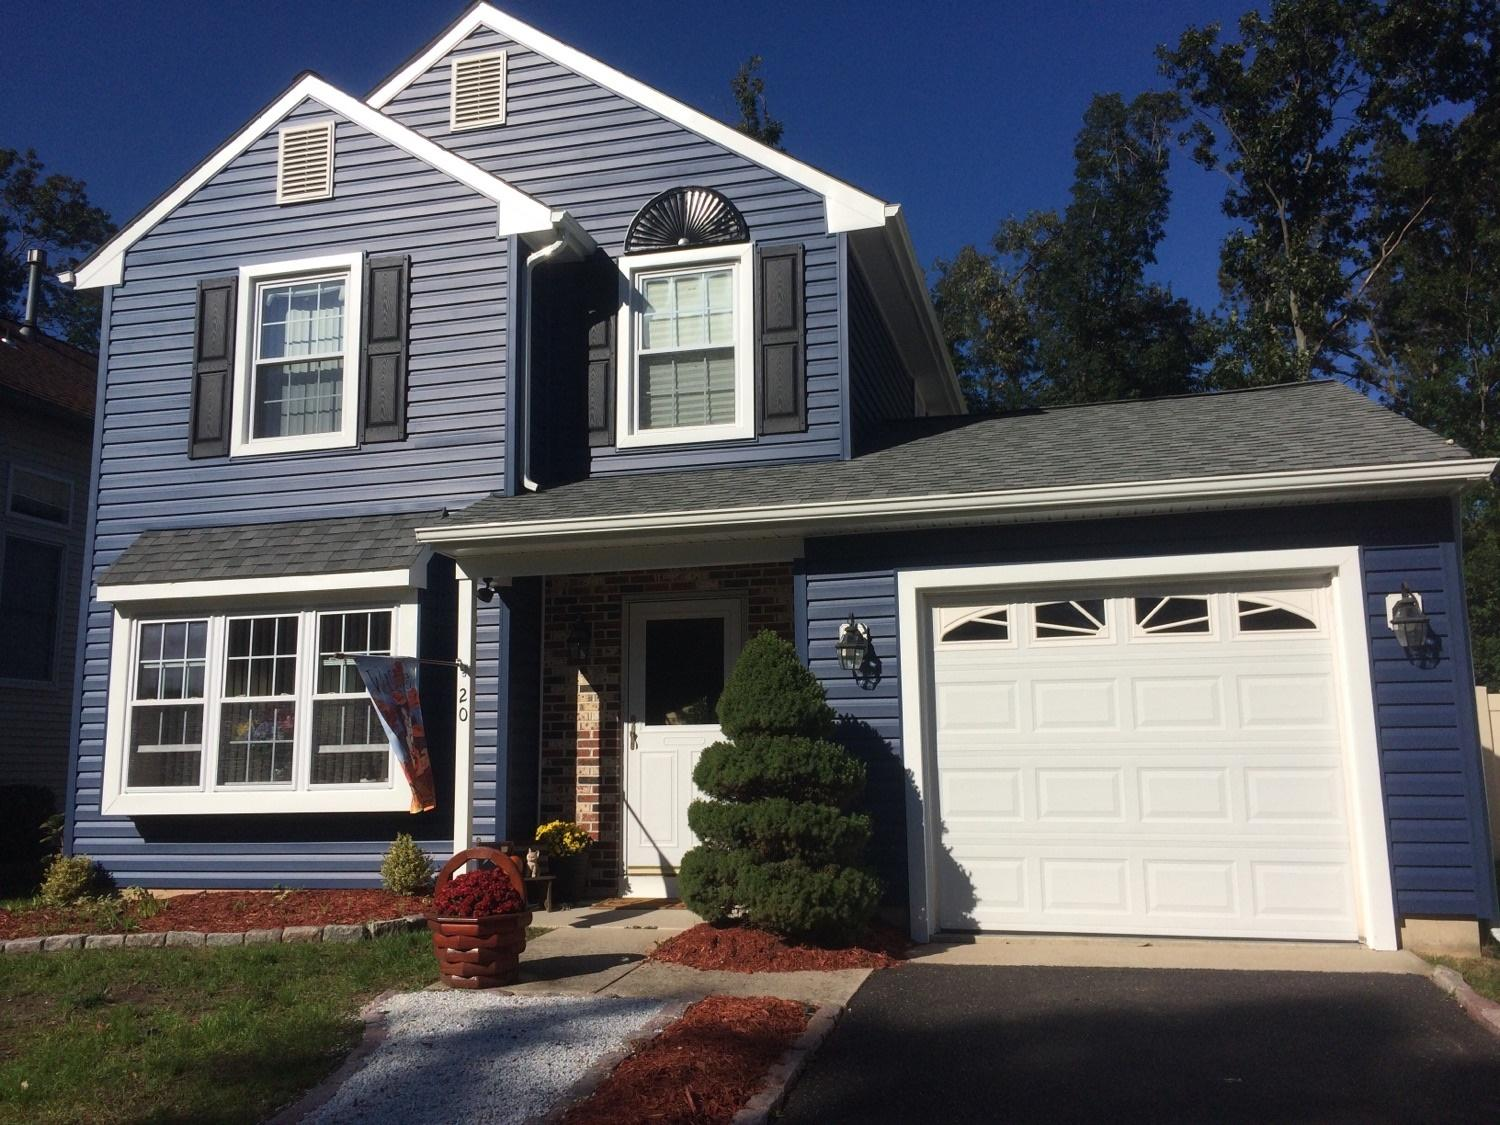 Beautiful Siding Install in Atco, NJ - After Photo